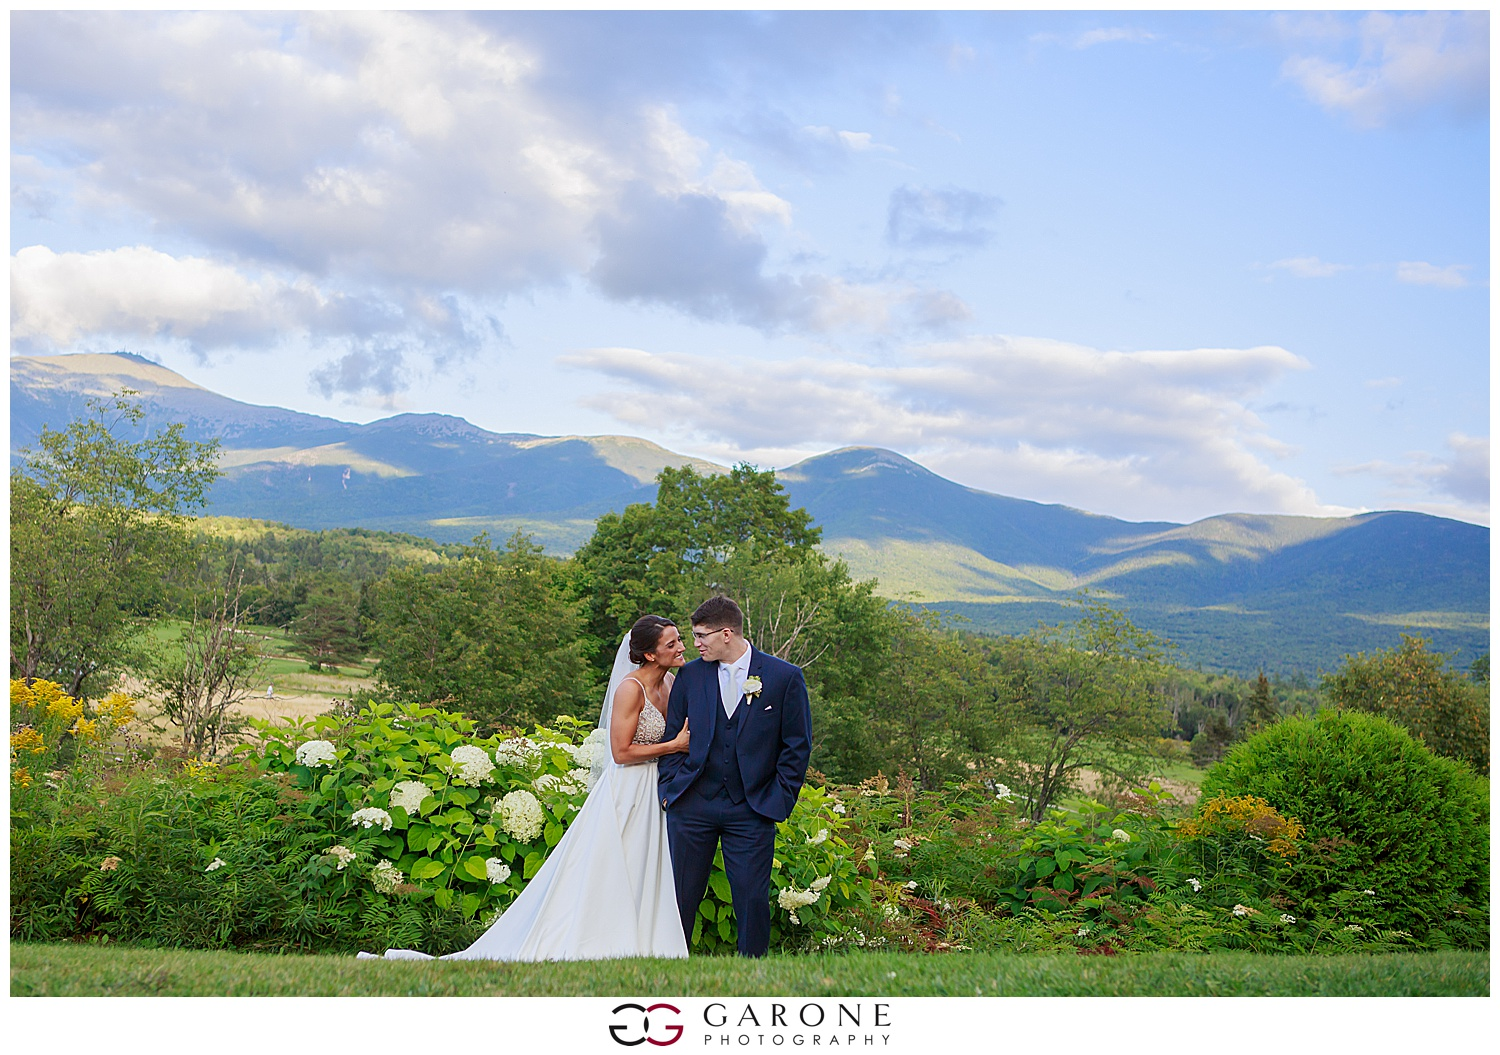 Omni_Mount_Washington_hotel_Wedding_White_Mountain_Wedding_Garone_Photography_0036.jpg